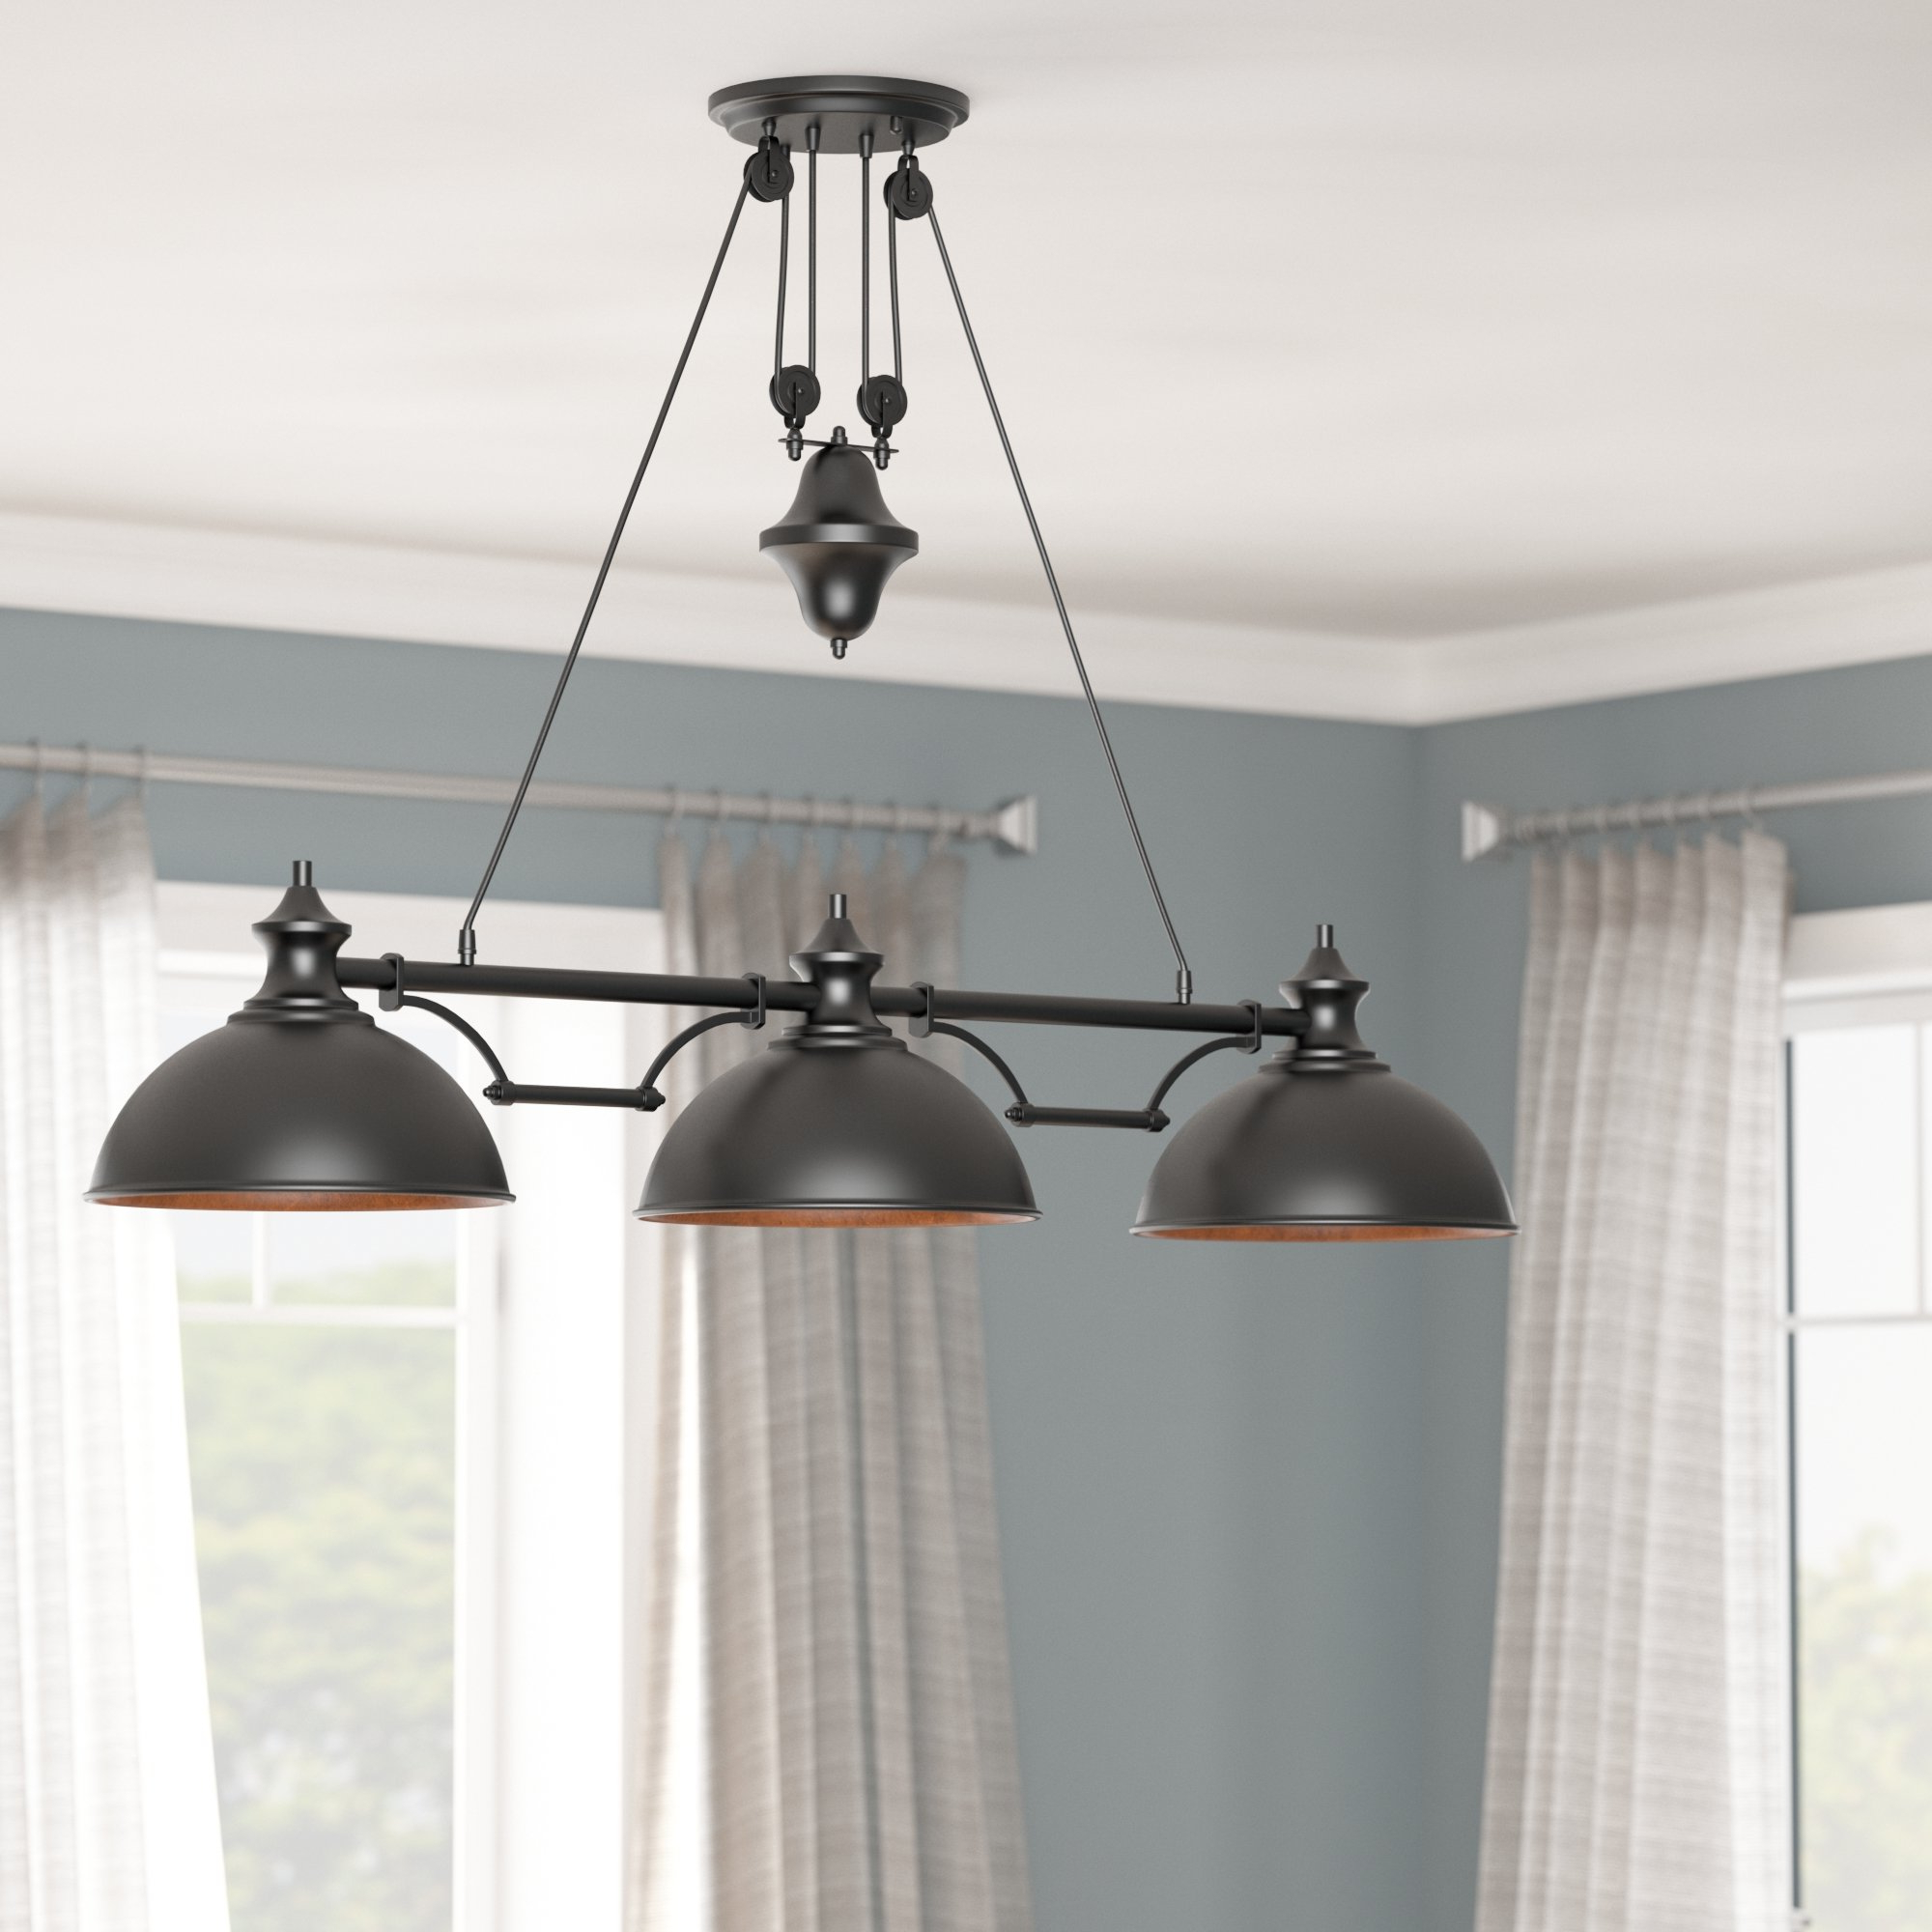 Rodriques 3 Light Kitchen Island Pendant Throughout Popular Ariel 3 Light Kitchen Island Dome Pendants (View 16 of 20)